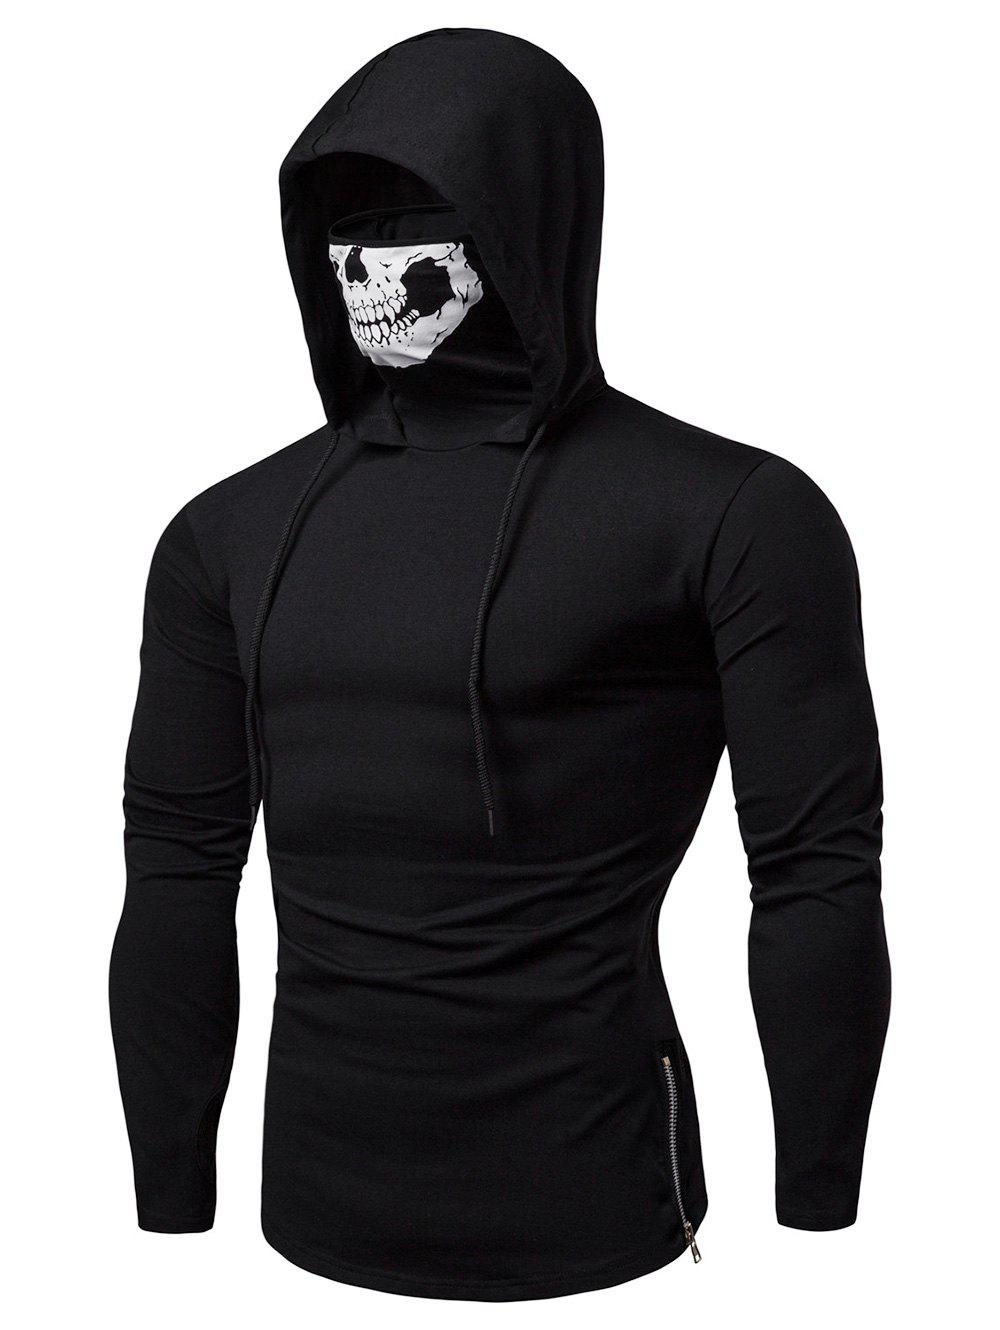 Discount Fashion Drawstring Scare Mask Hoodie for Man